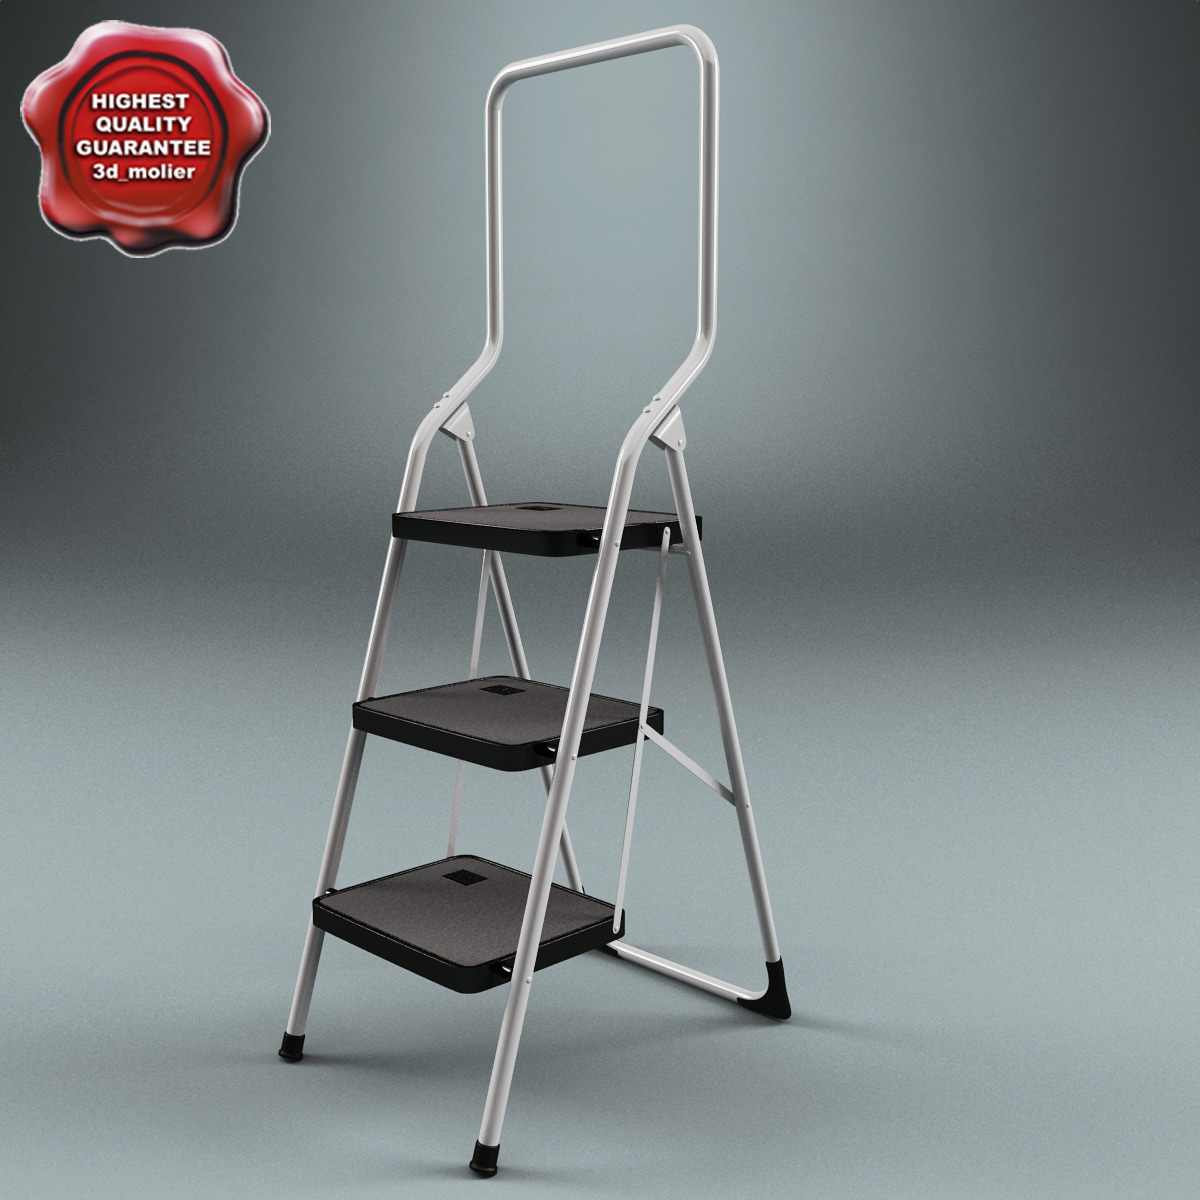 Step_Ladder_V2_0.jpg